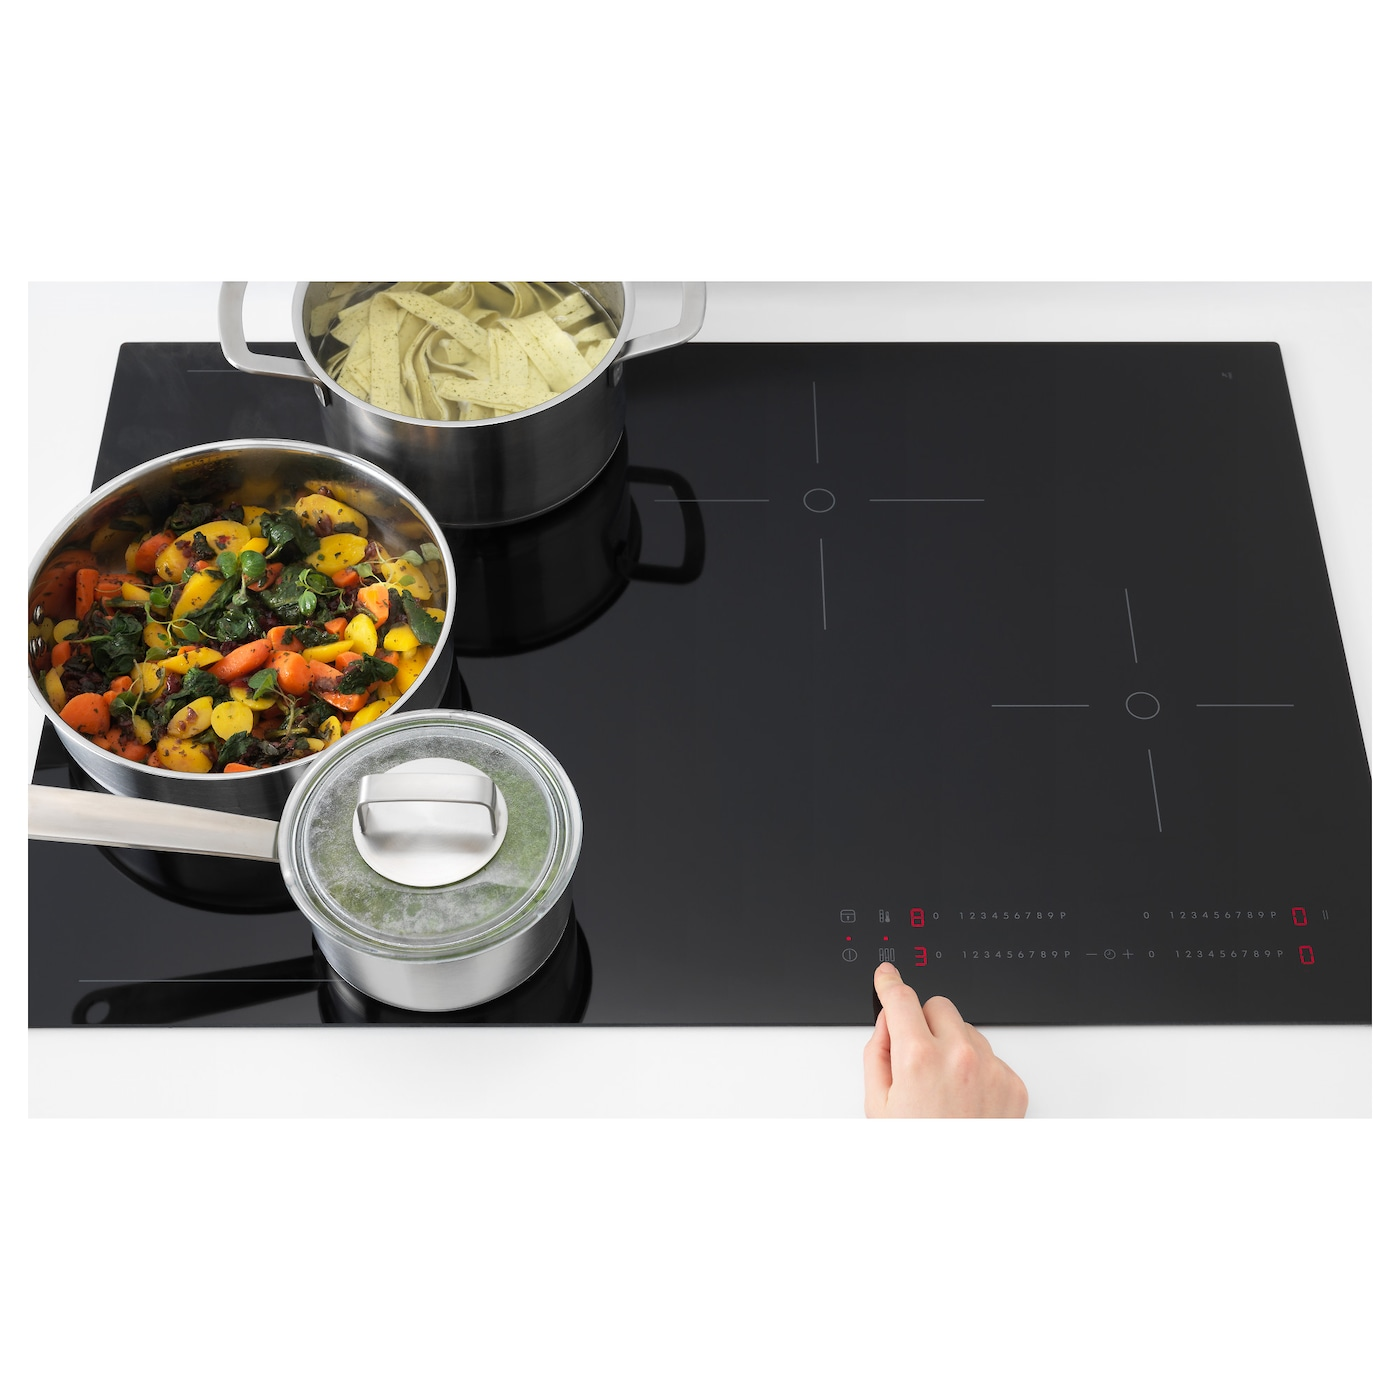 IKEA HÖGKLASSIG induction hob with flexible zones